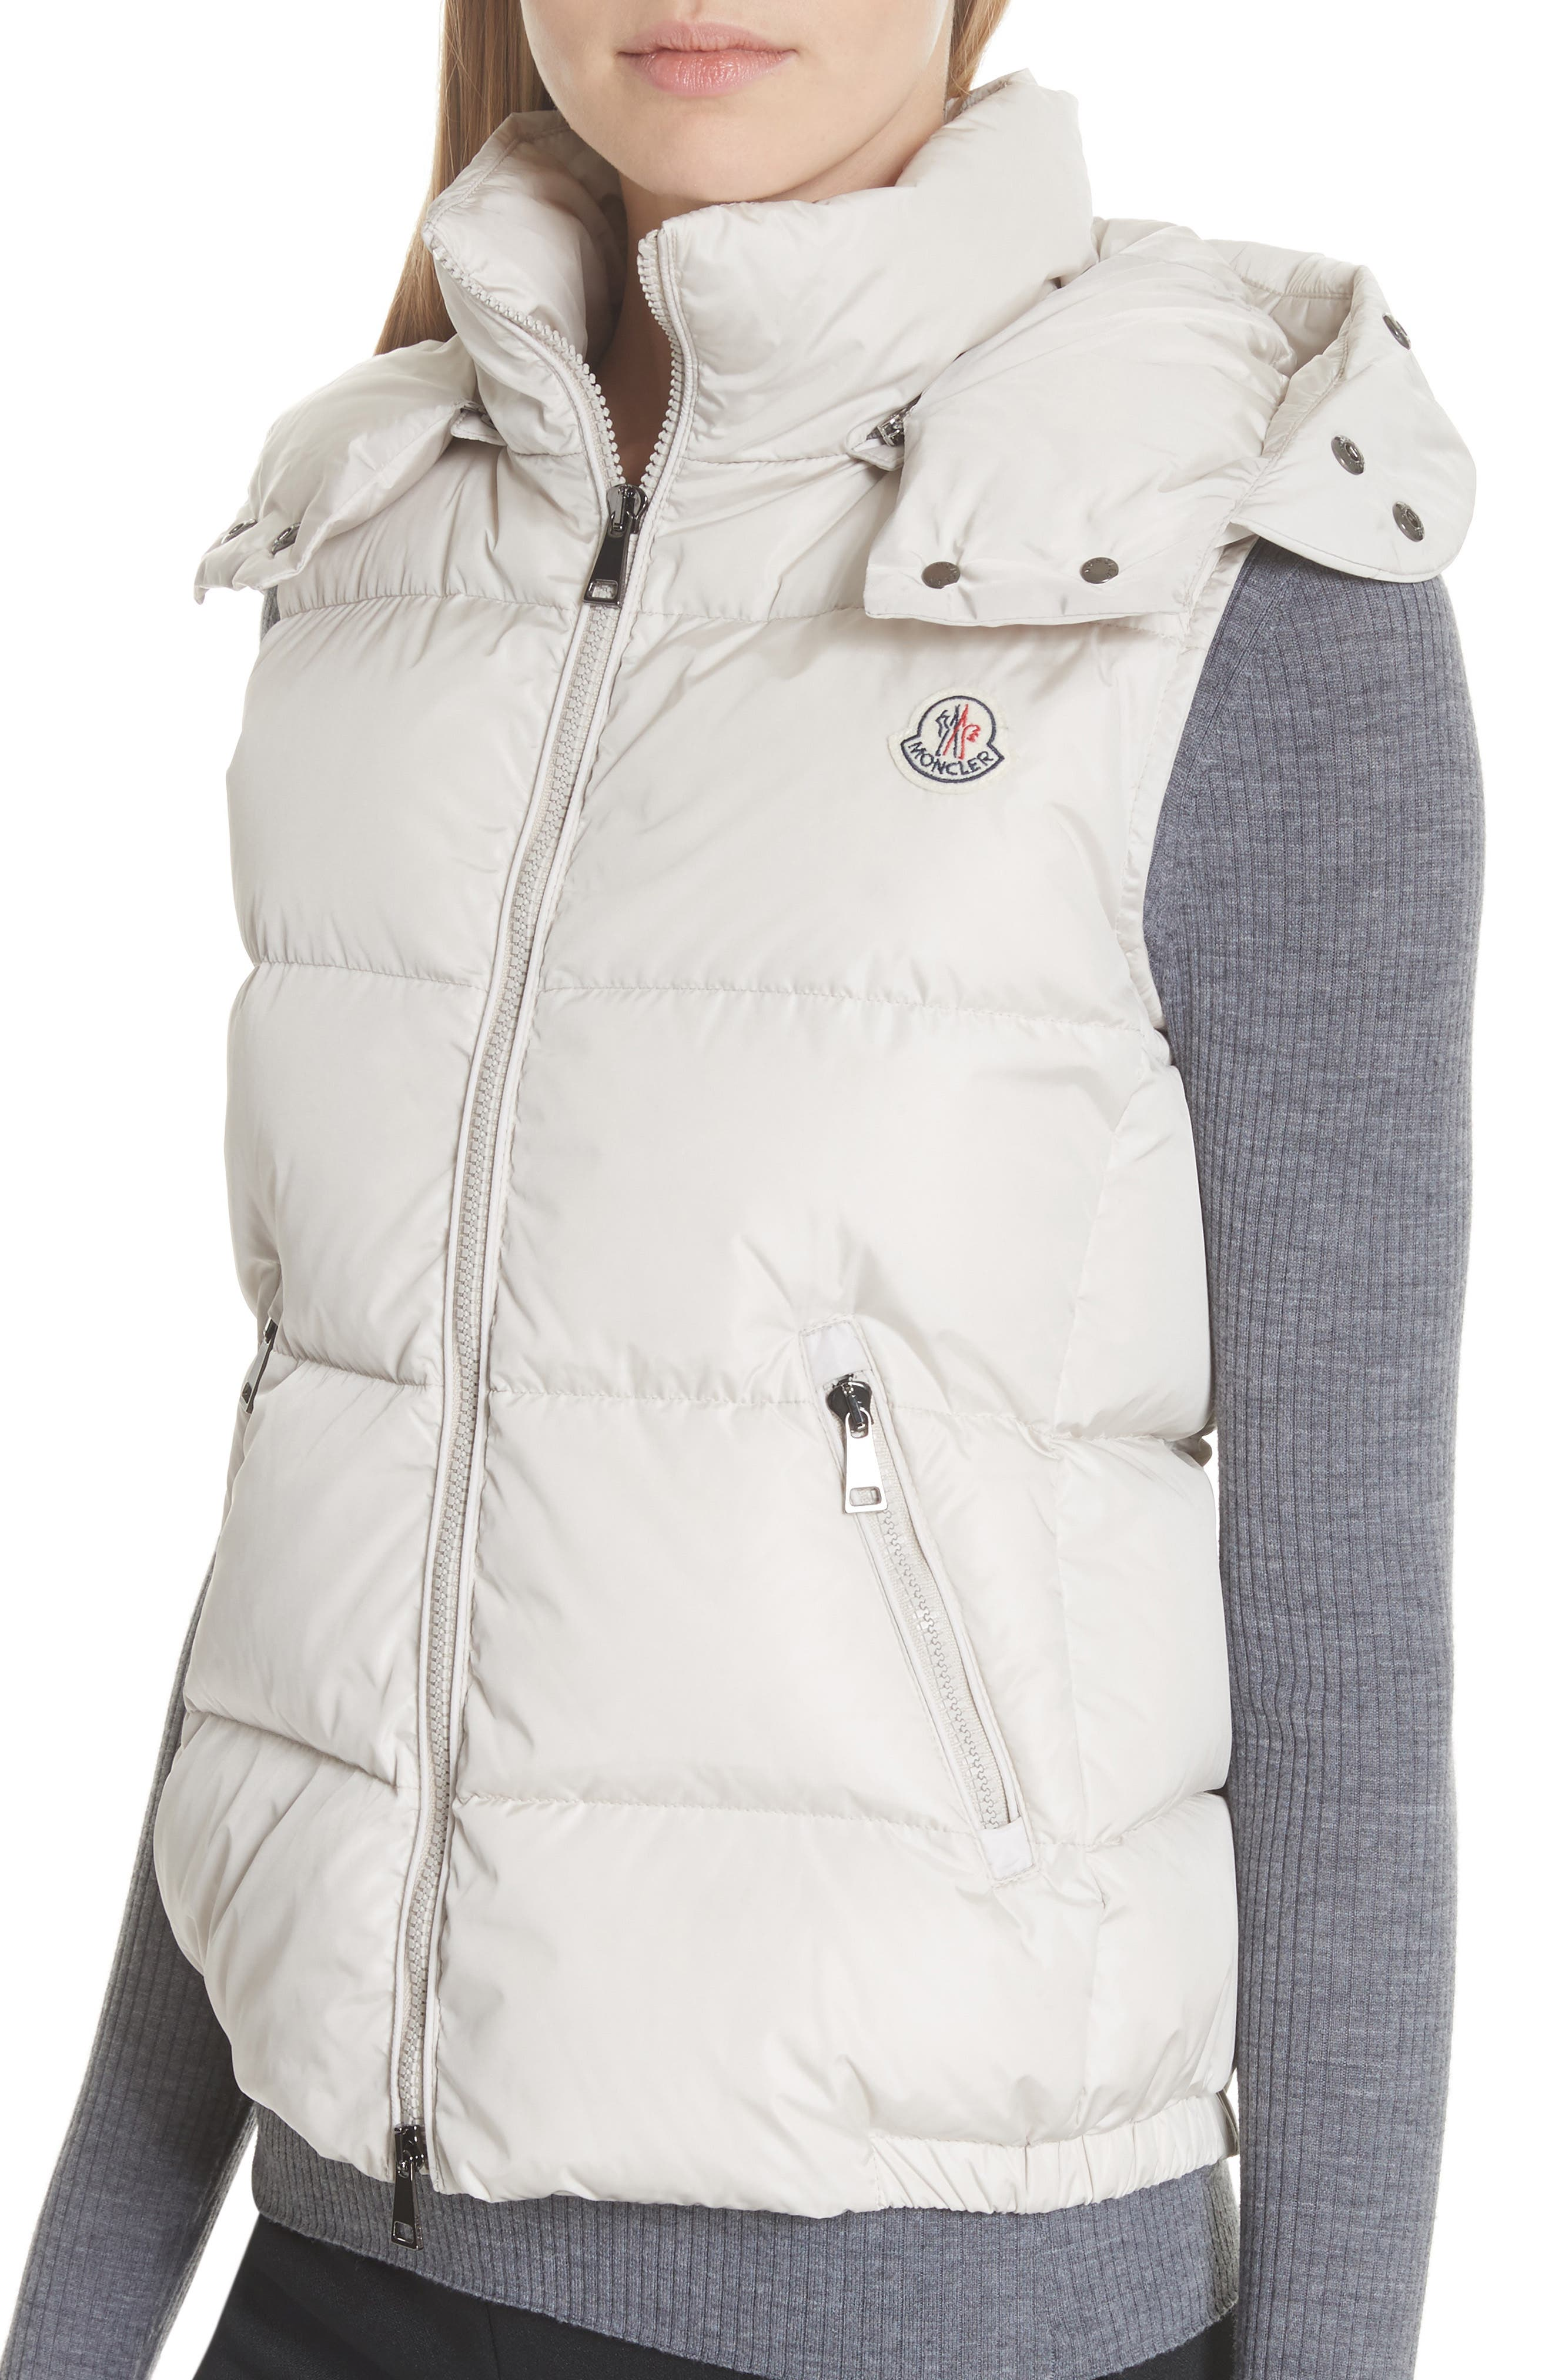 Gallinule Quilted Down Vest with Detachable Genuine Fox Fur Trim Hood,                             Alternate thumbnail 5, color,                             CHAMPAGNE